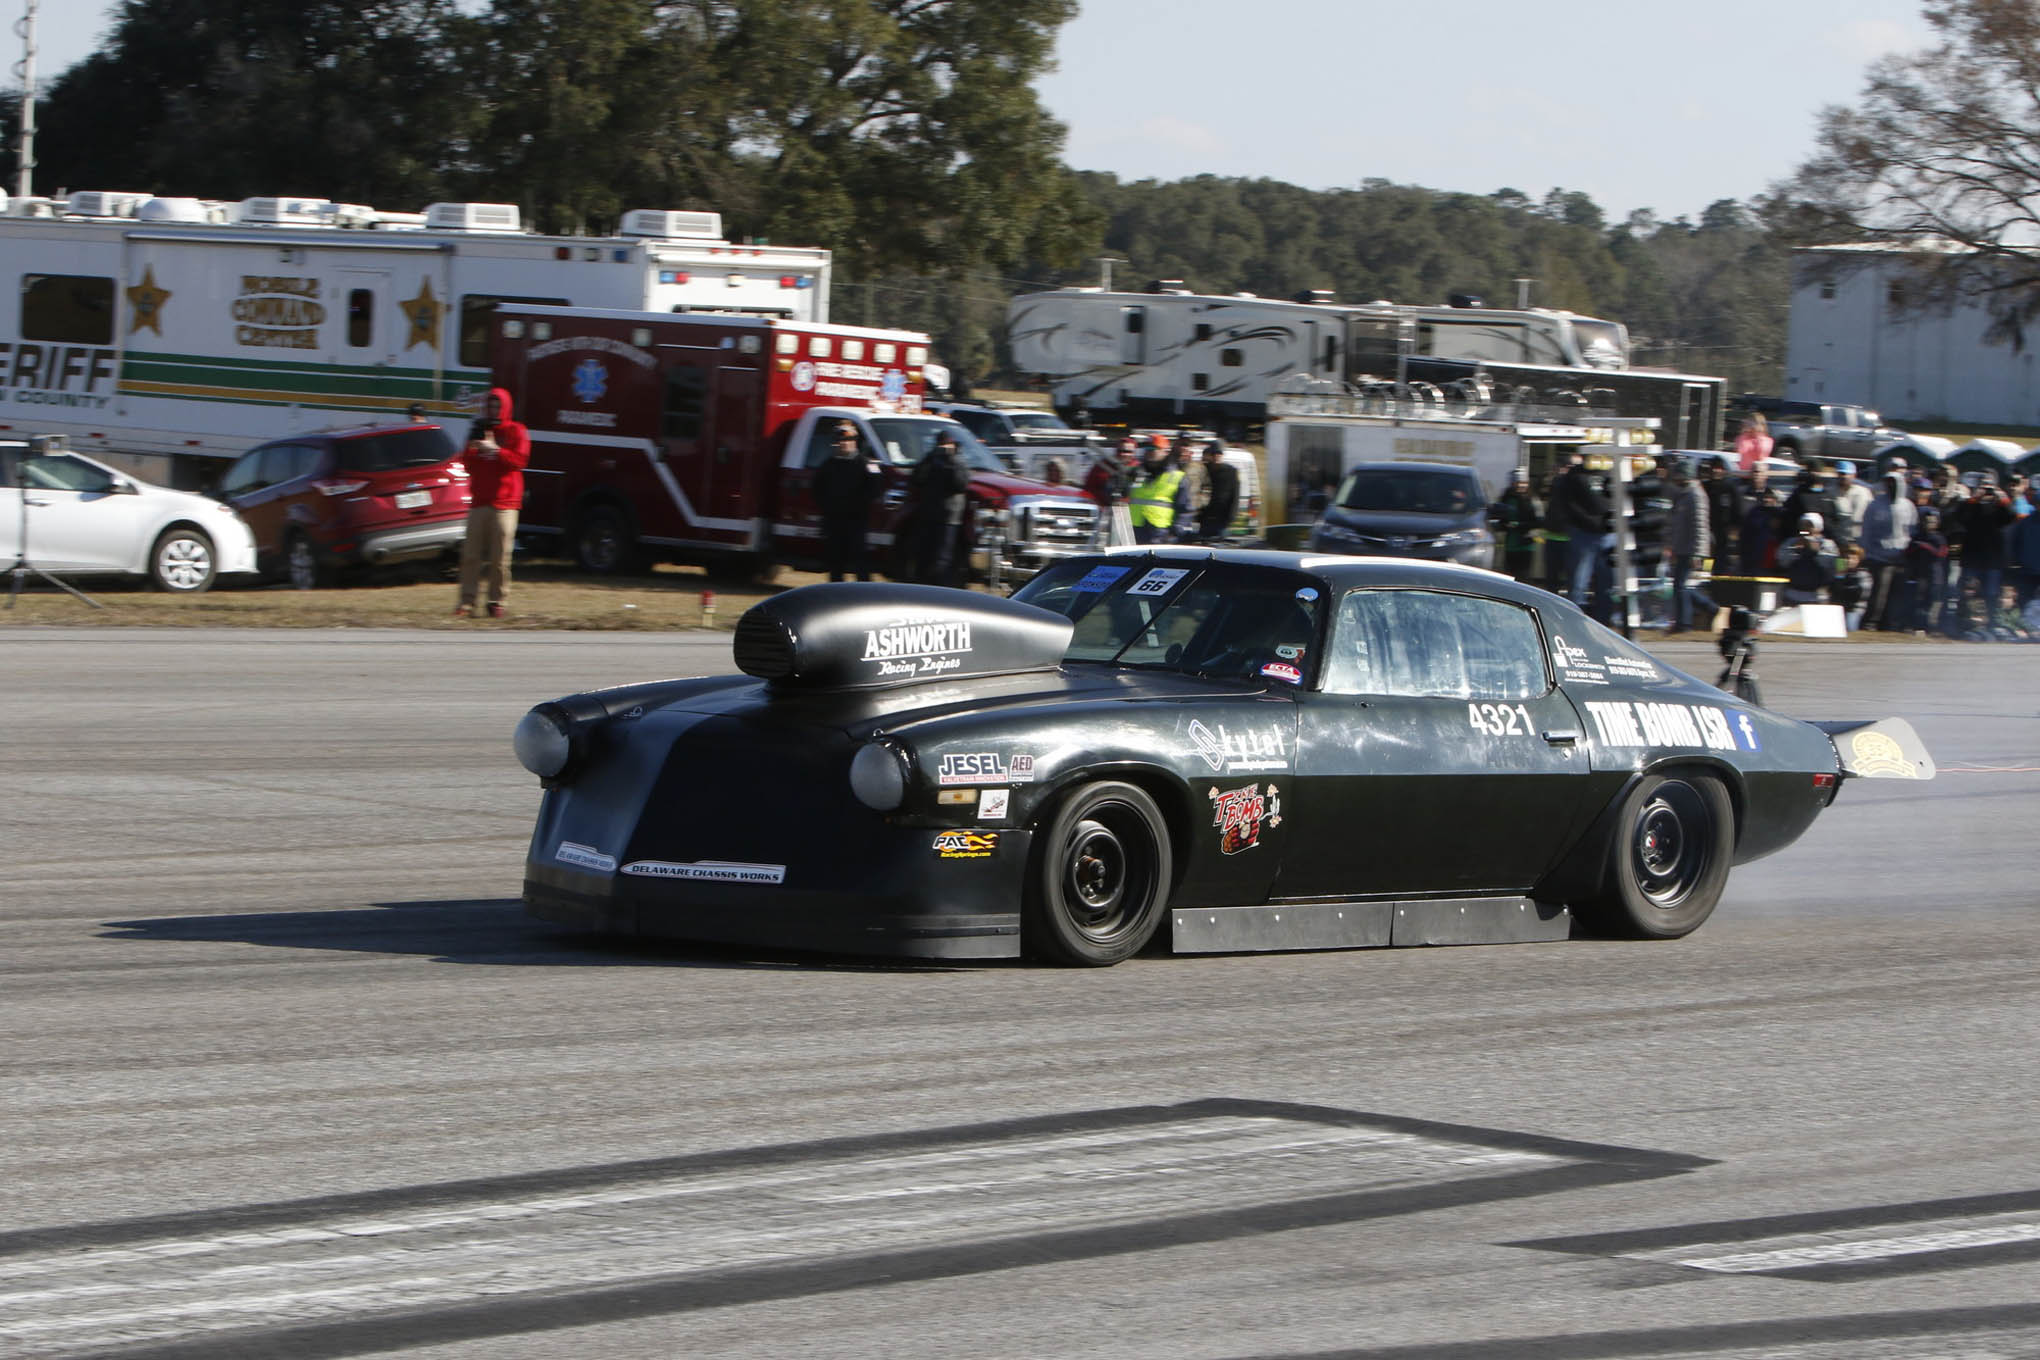 David and Mike Matyjasik made noise with their 1971 Camaro that packs a 364ci small-block. They ran 173 mph in their first attempt at half-mile racing.